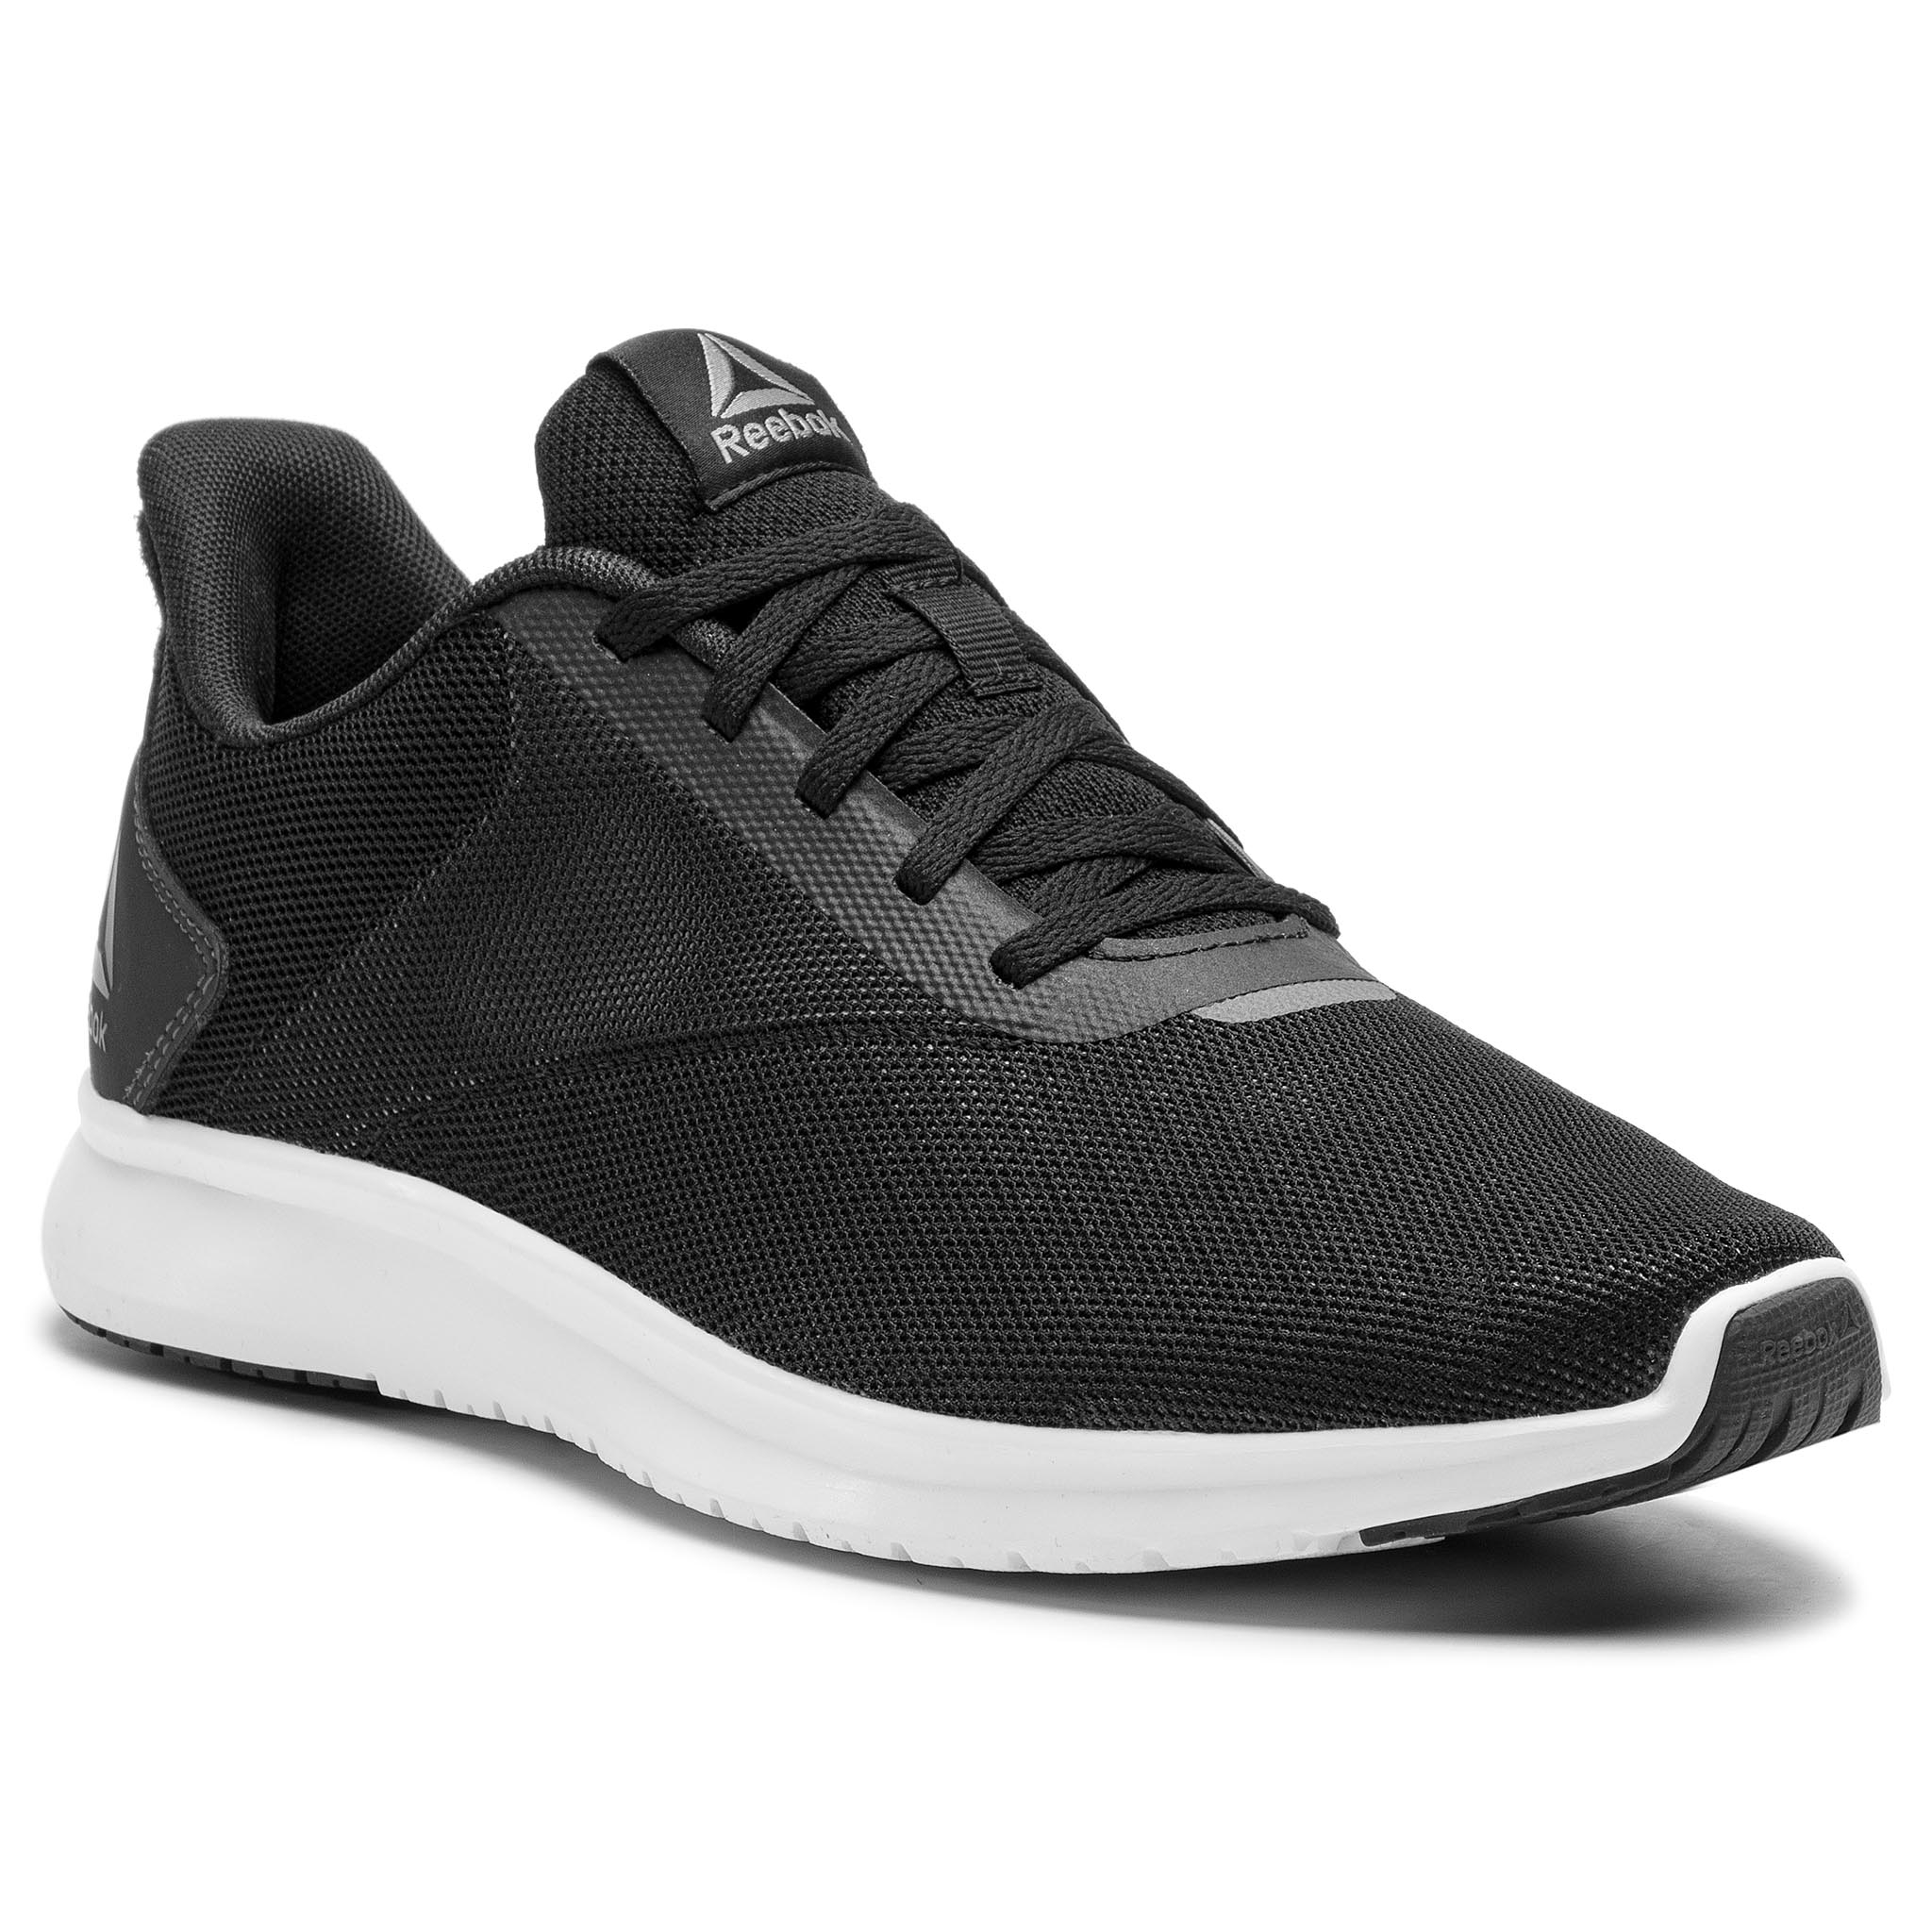 uk availability 54155 a01d4 Shoes Reebok. Print Smooth 2.0 Ultk ...